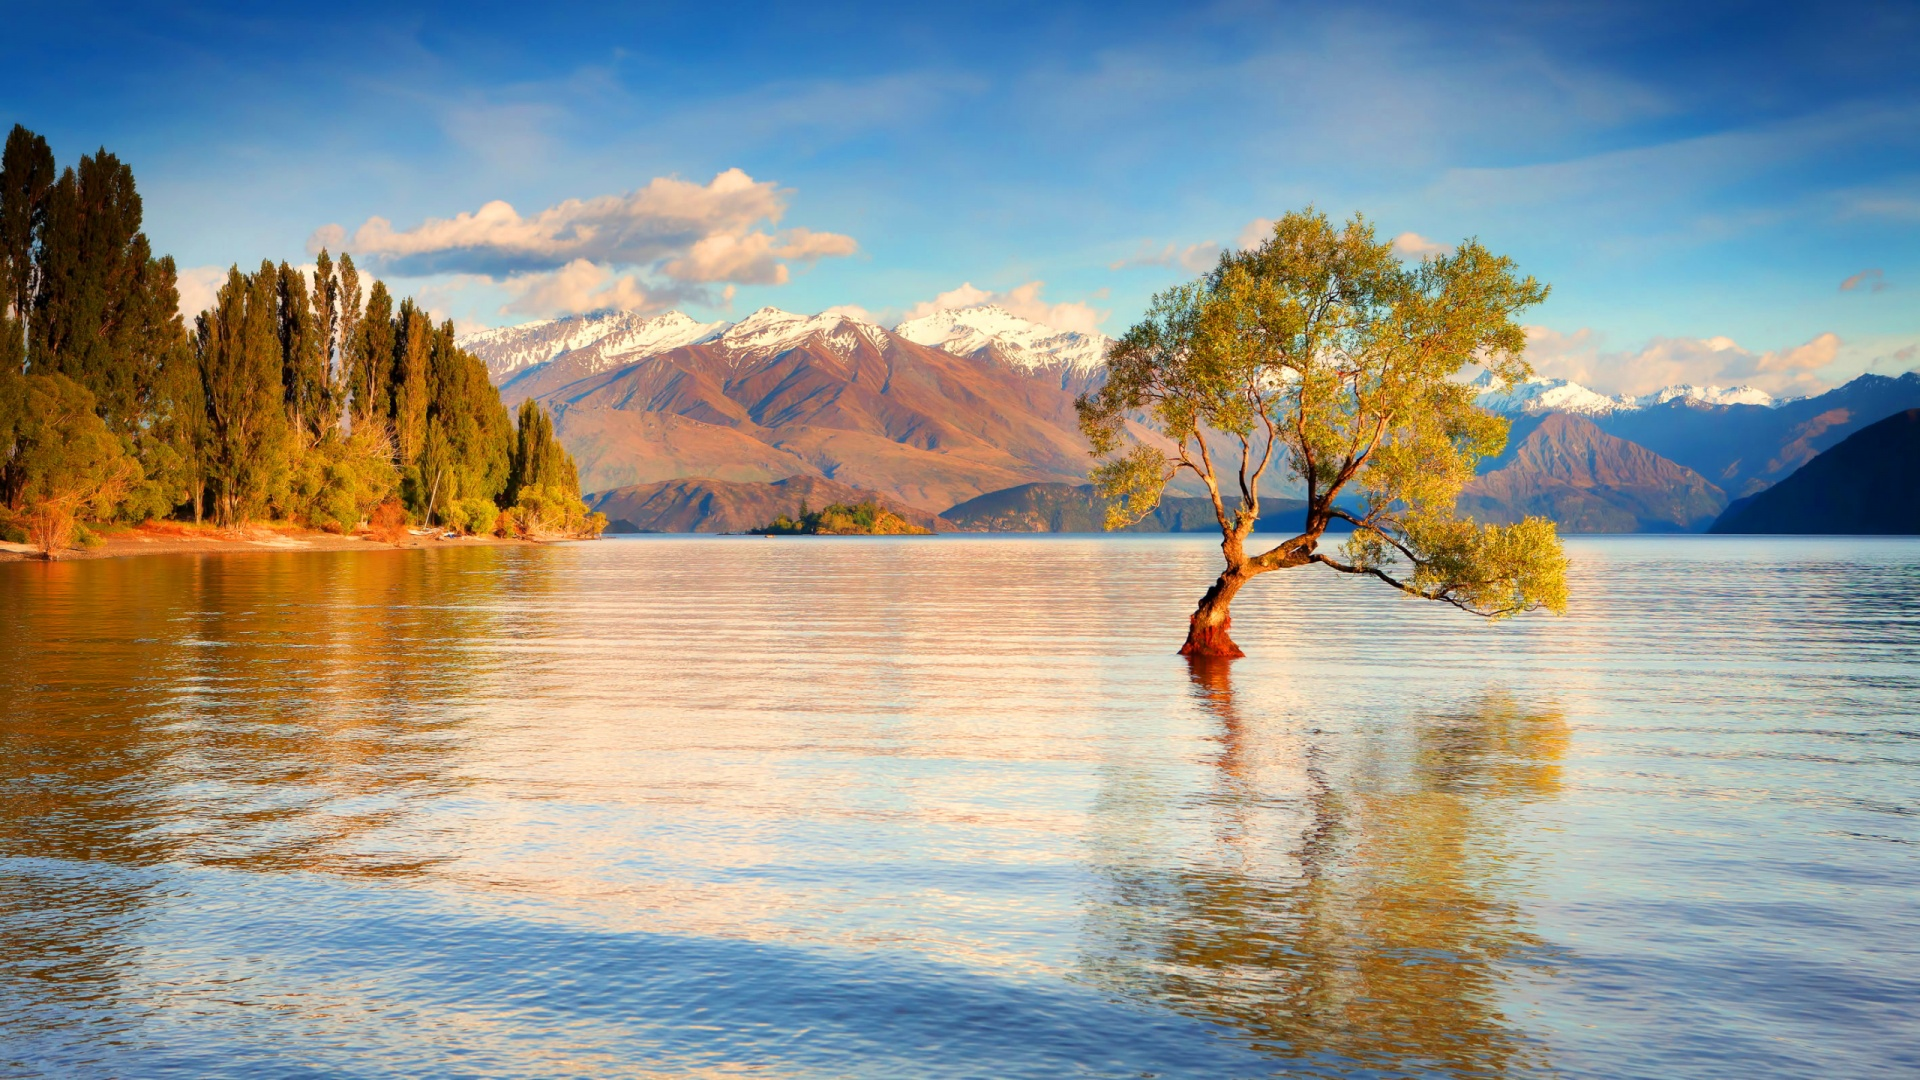 Description: The Wallpaper above is Lake wanaka new zealand Wallpaper in Resolution 1920x1080. Choose your Resolution and Download Lake wanaka new zealand ...